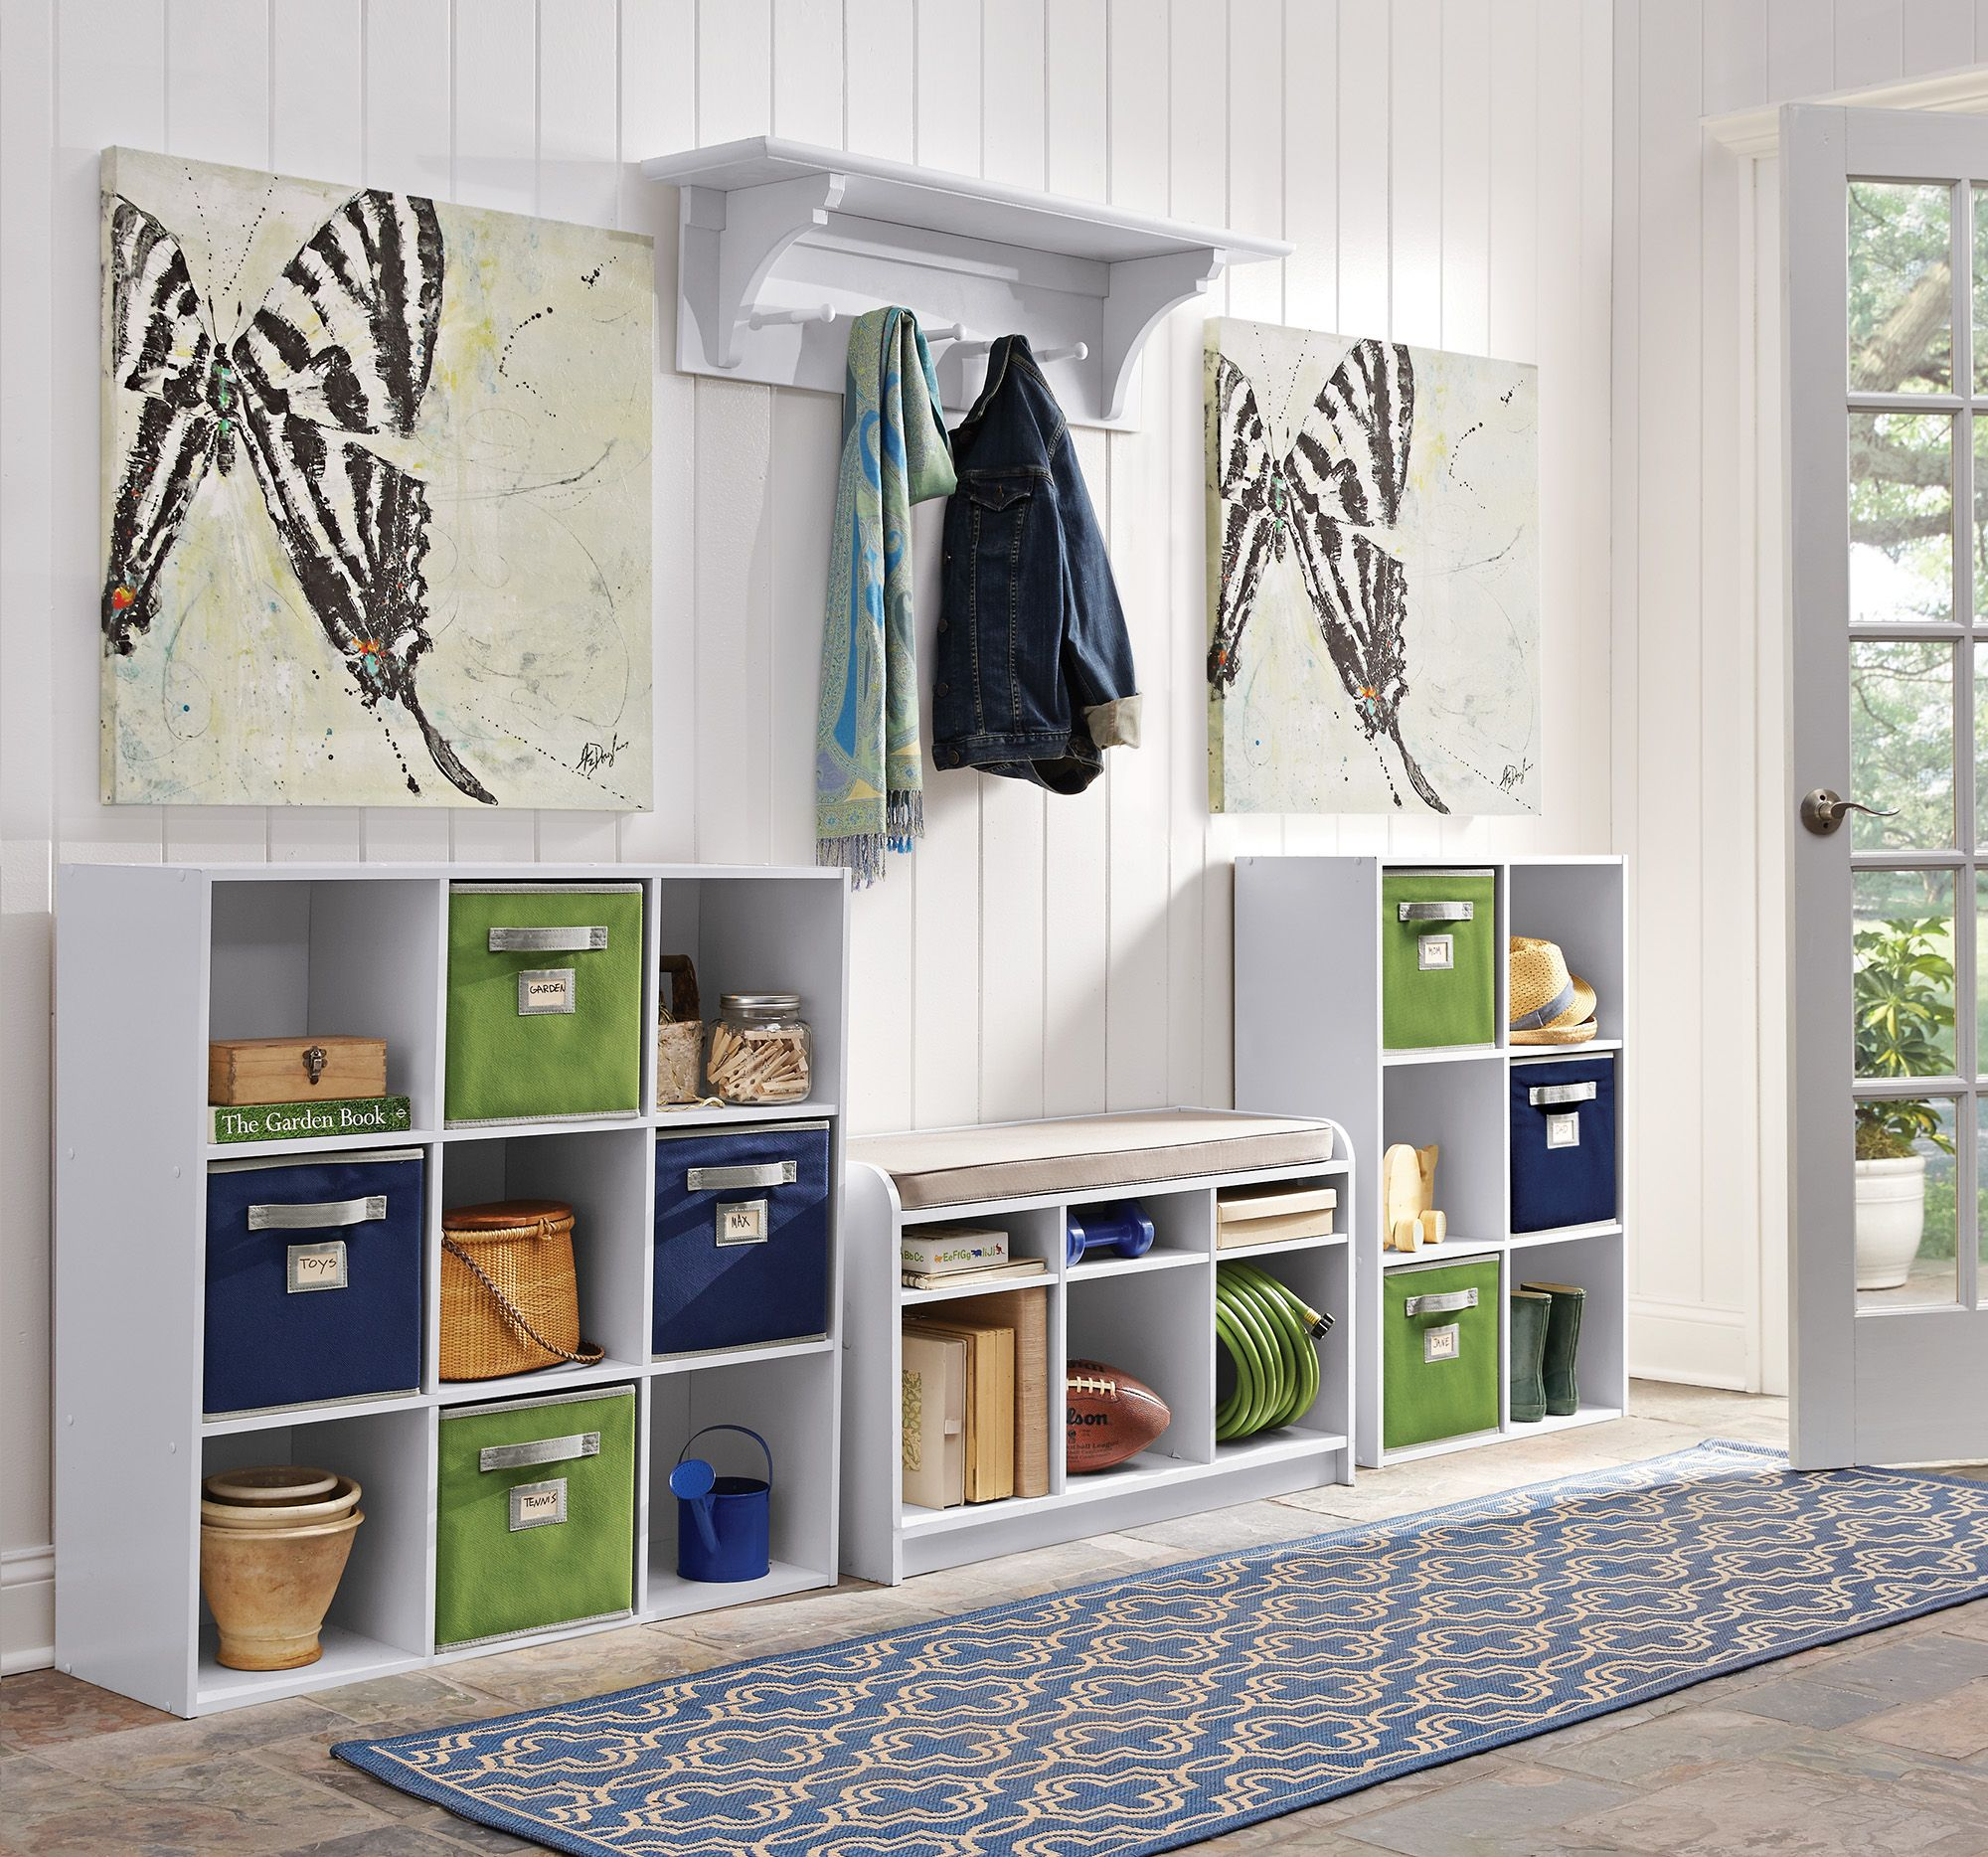 Make sure the mudroom is less of a mess with cube organizers and ...